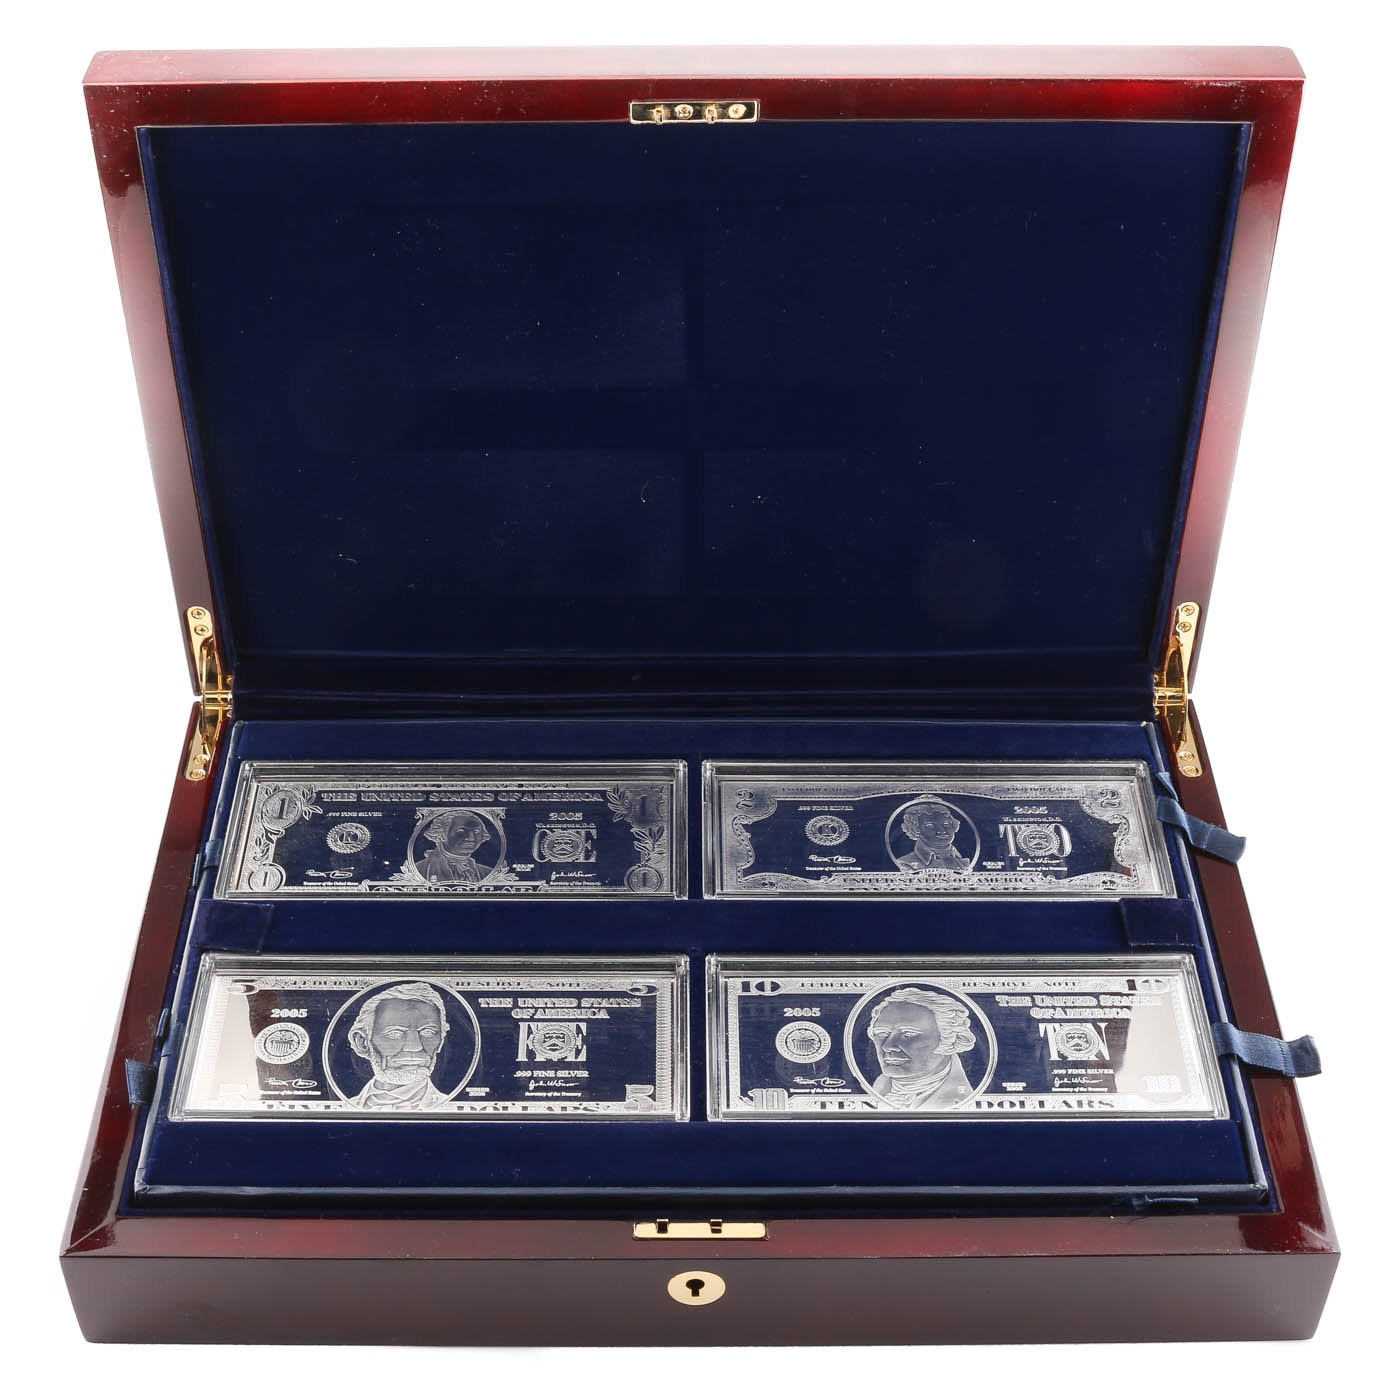 Group of Six Silver Copies of U.S. Currency Notes From the Washington Mint